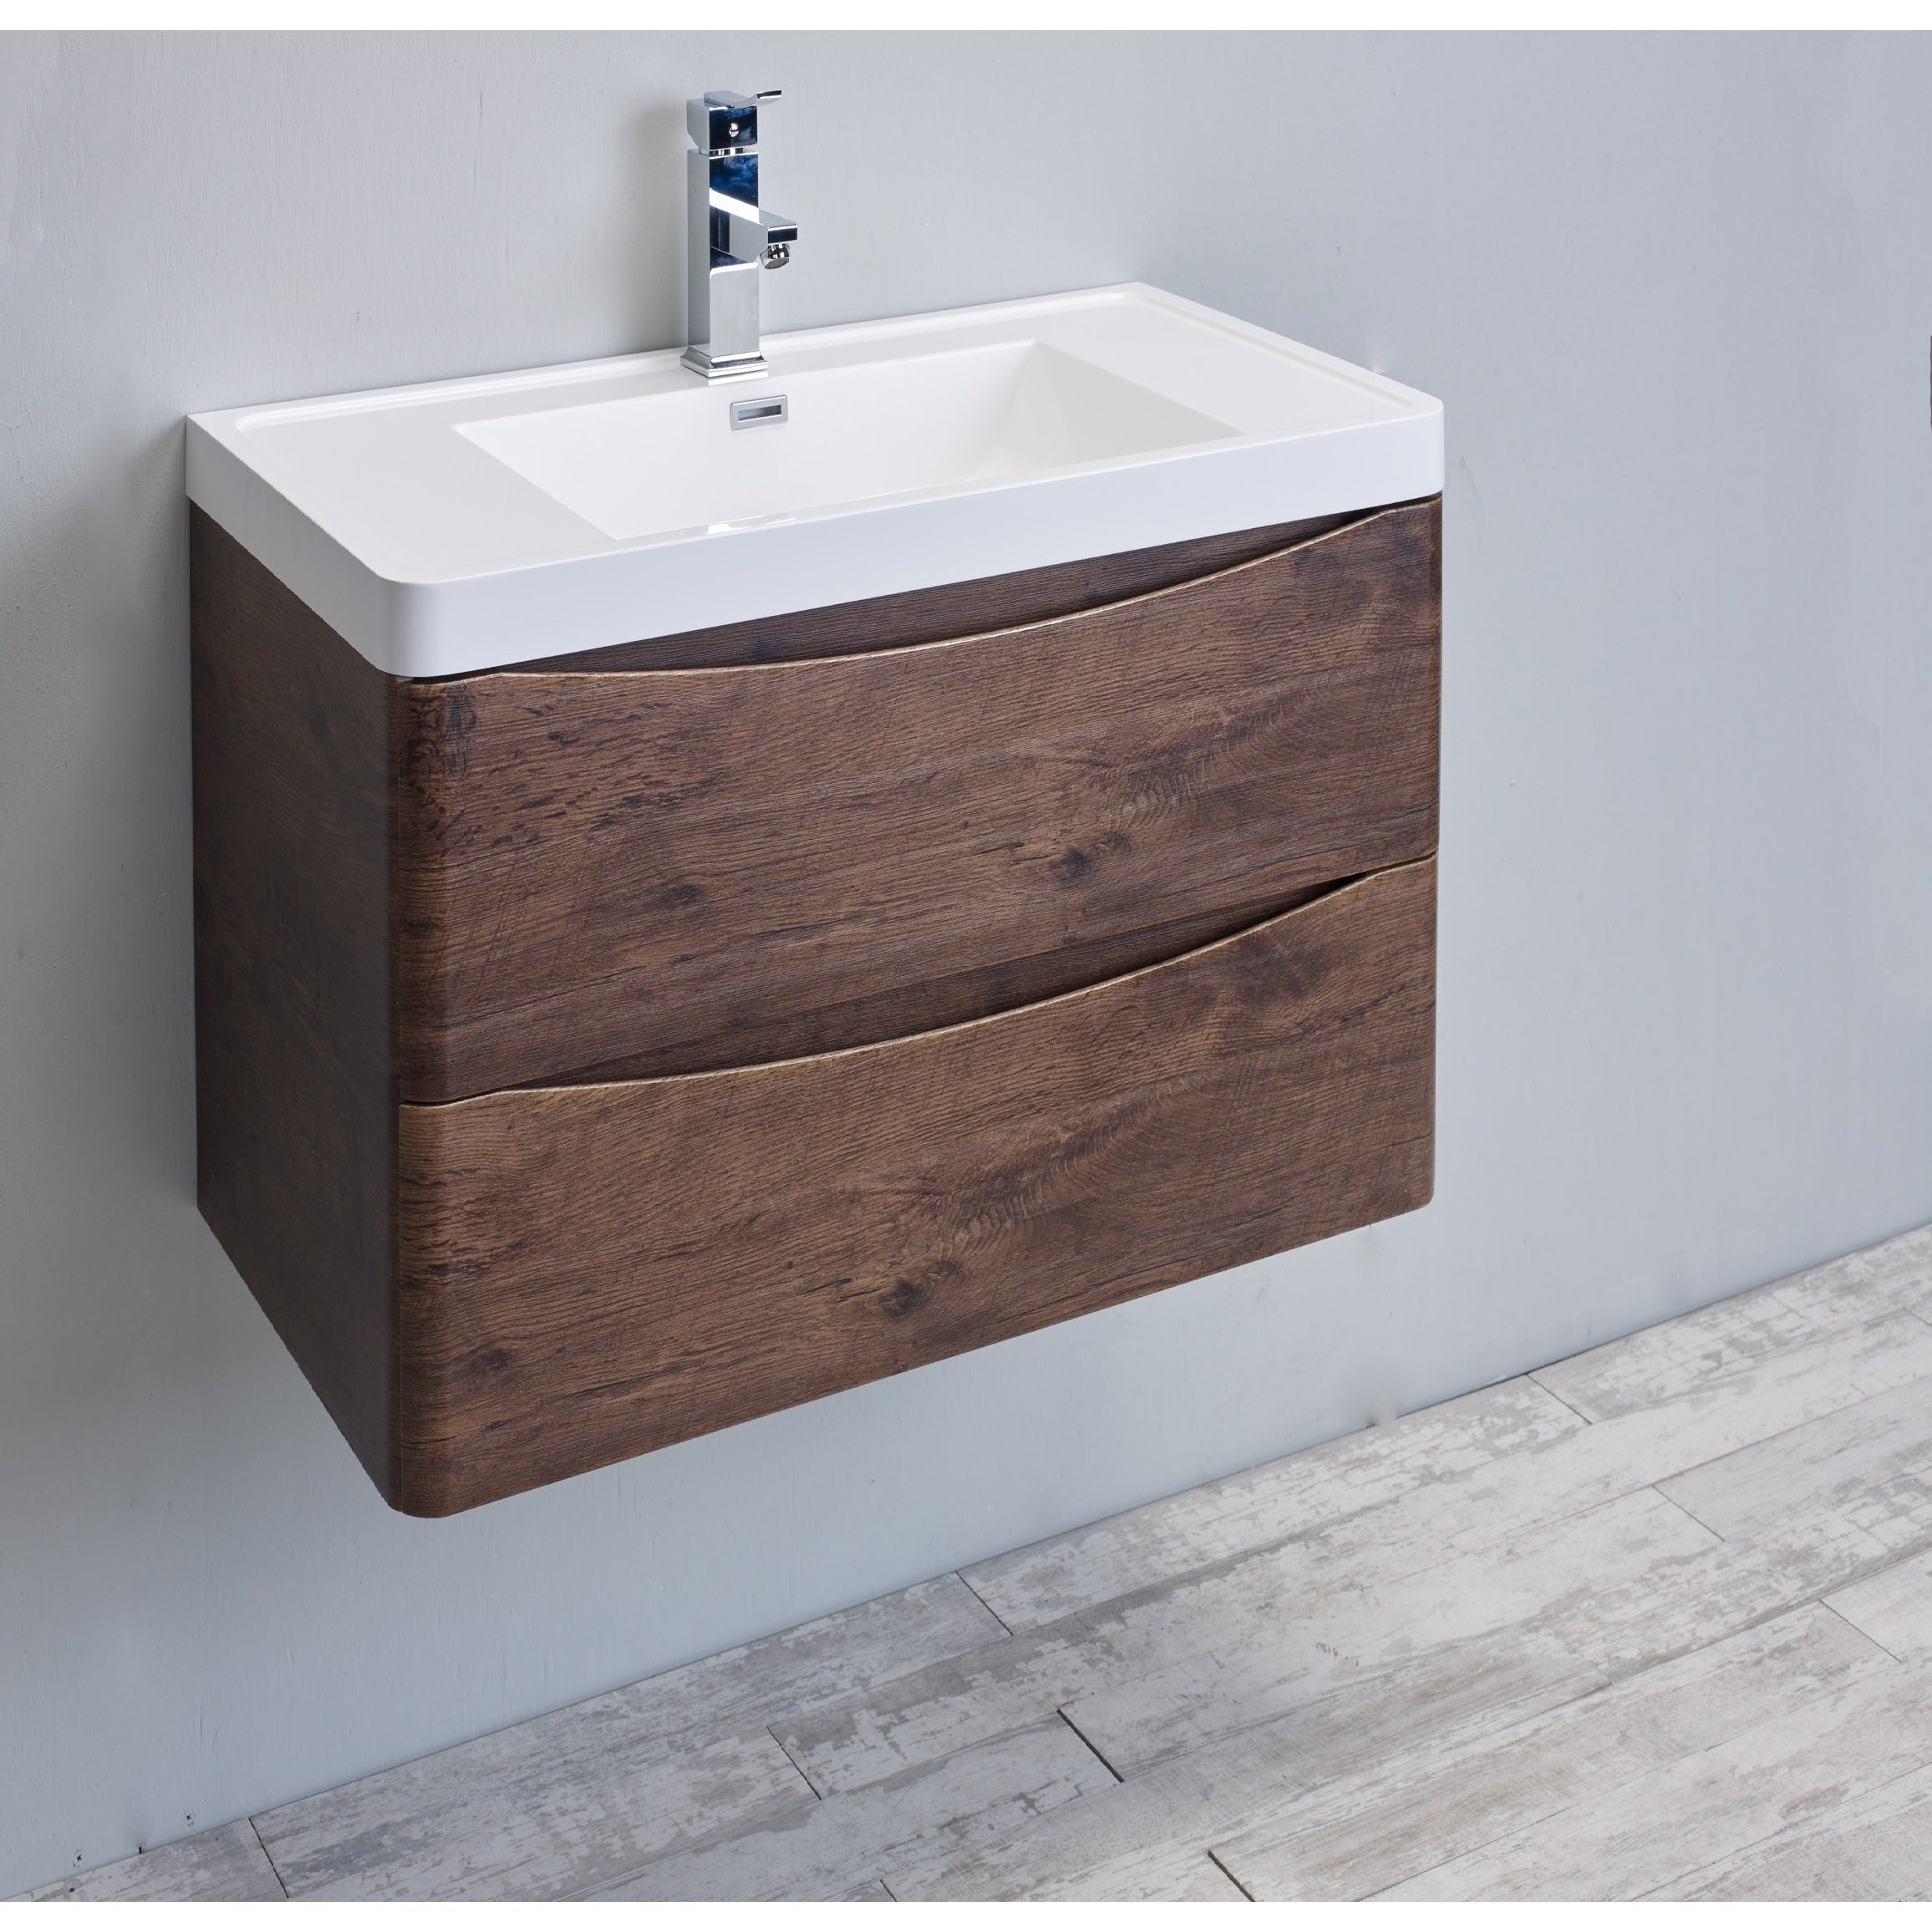 Shop eviva smile 30 inch rosewood modern bathroom vanity set with integrated white acrylic sink free shipping today overstock com 12523353